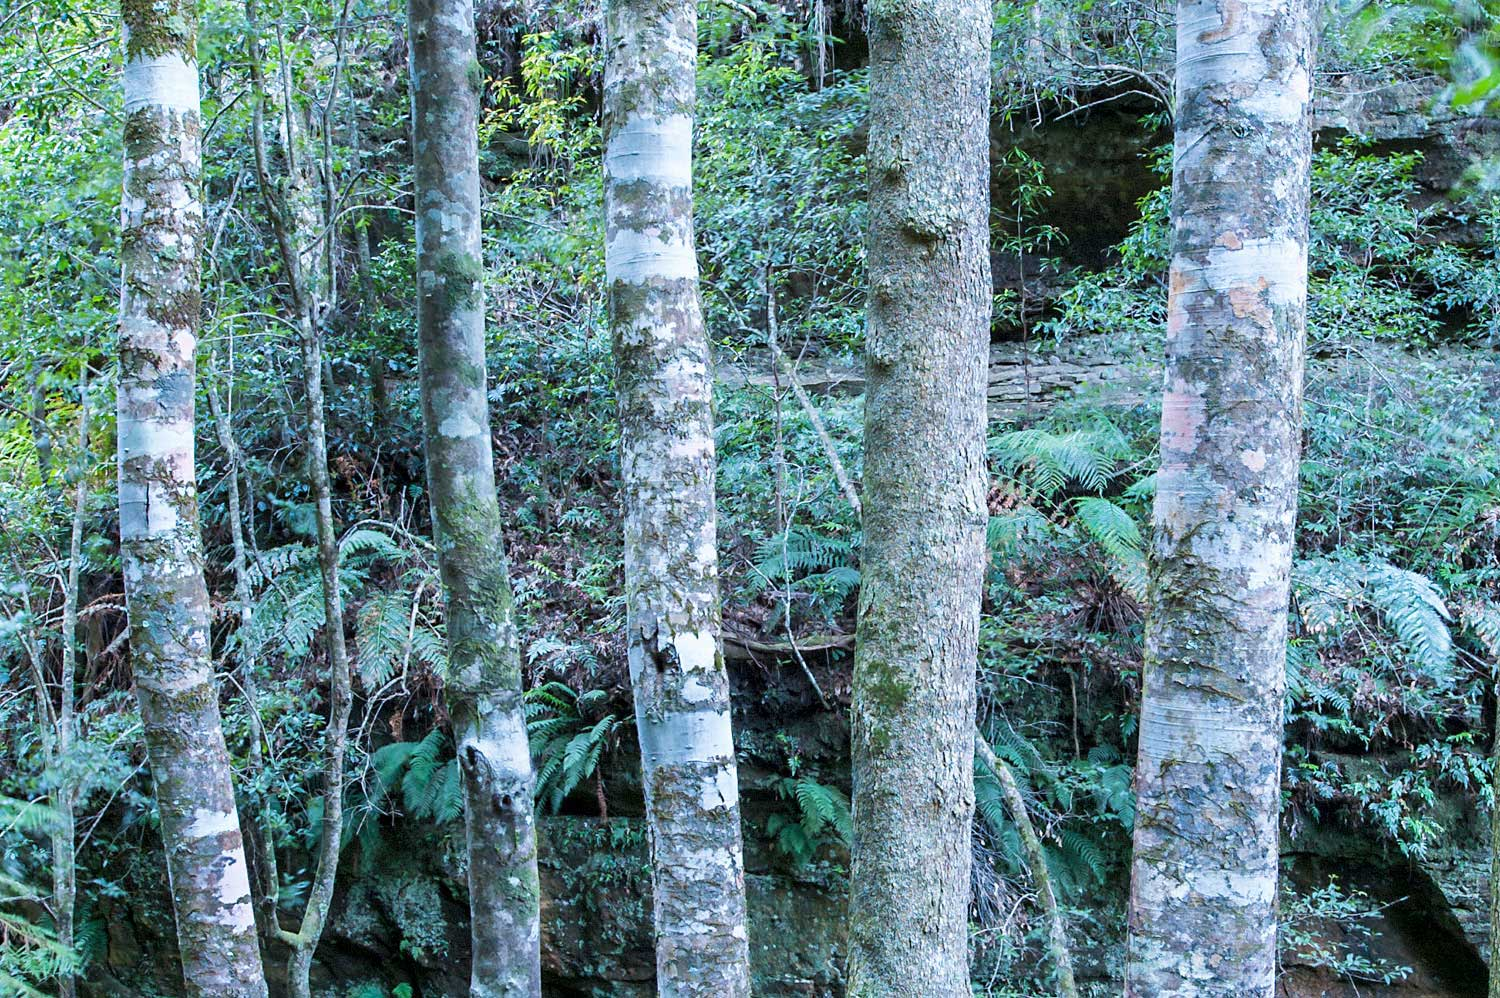 Warren-Hinder-LR-Rainforest-Trees-at-size-master.jpg